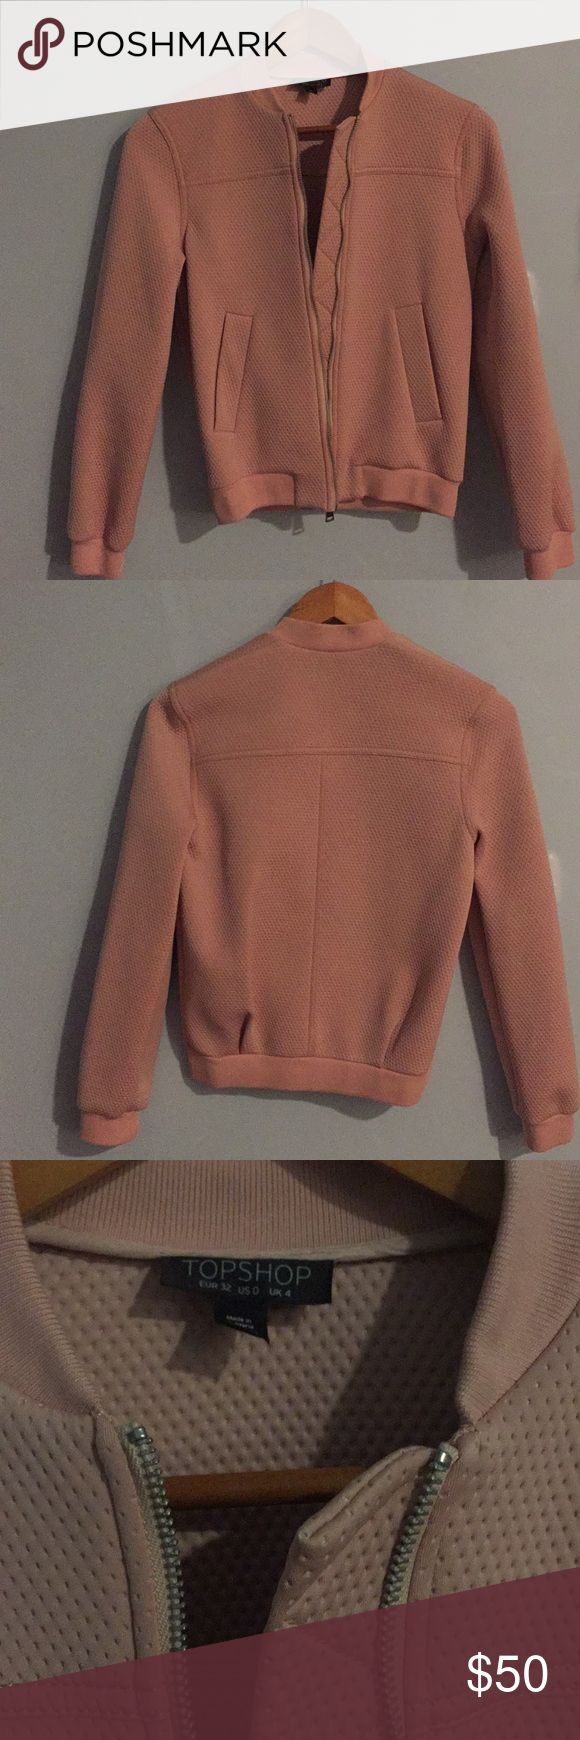 Light Pink Bomber Jacket A nude/pink bomber jacket with dimples and pockets. Topshop. Like new. Topshop Jackets & Coats Utility Jackets